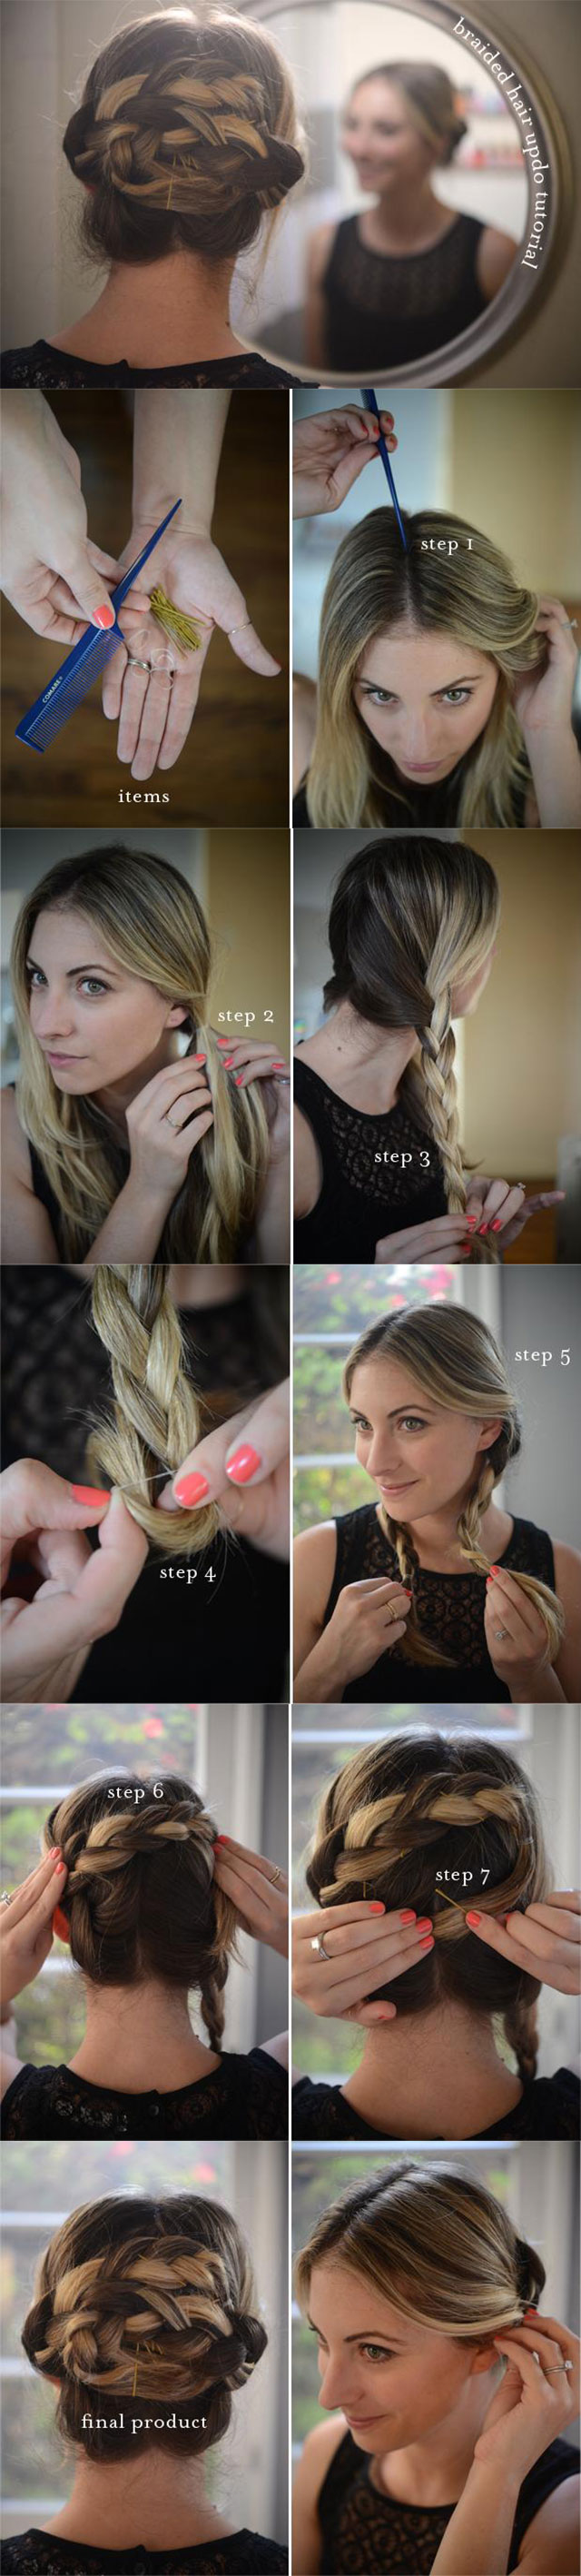 step by step quick and easy hairstyles for long hair DIY  Your Step by Step for the Best Cute Hairstyles   Fashion Diva